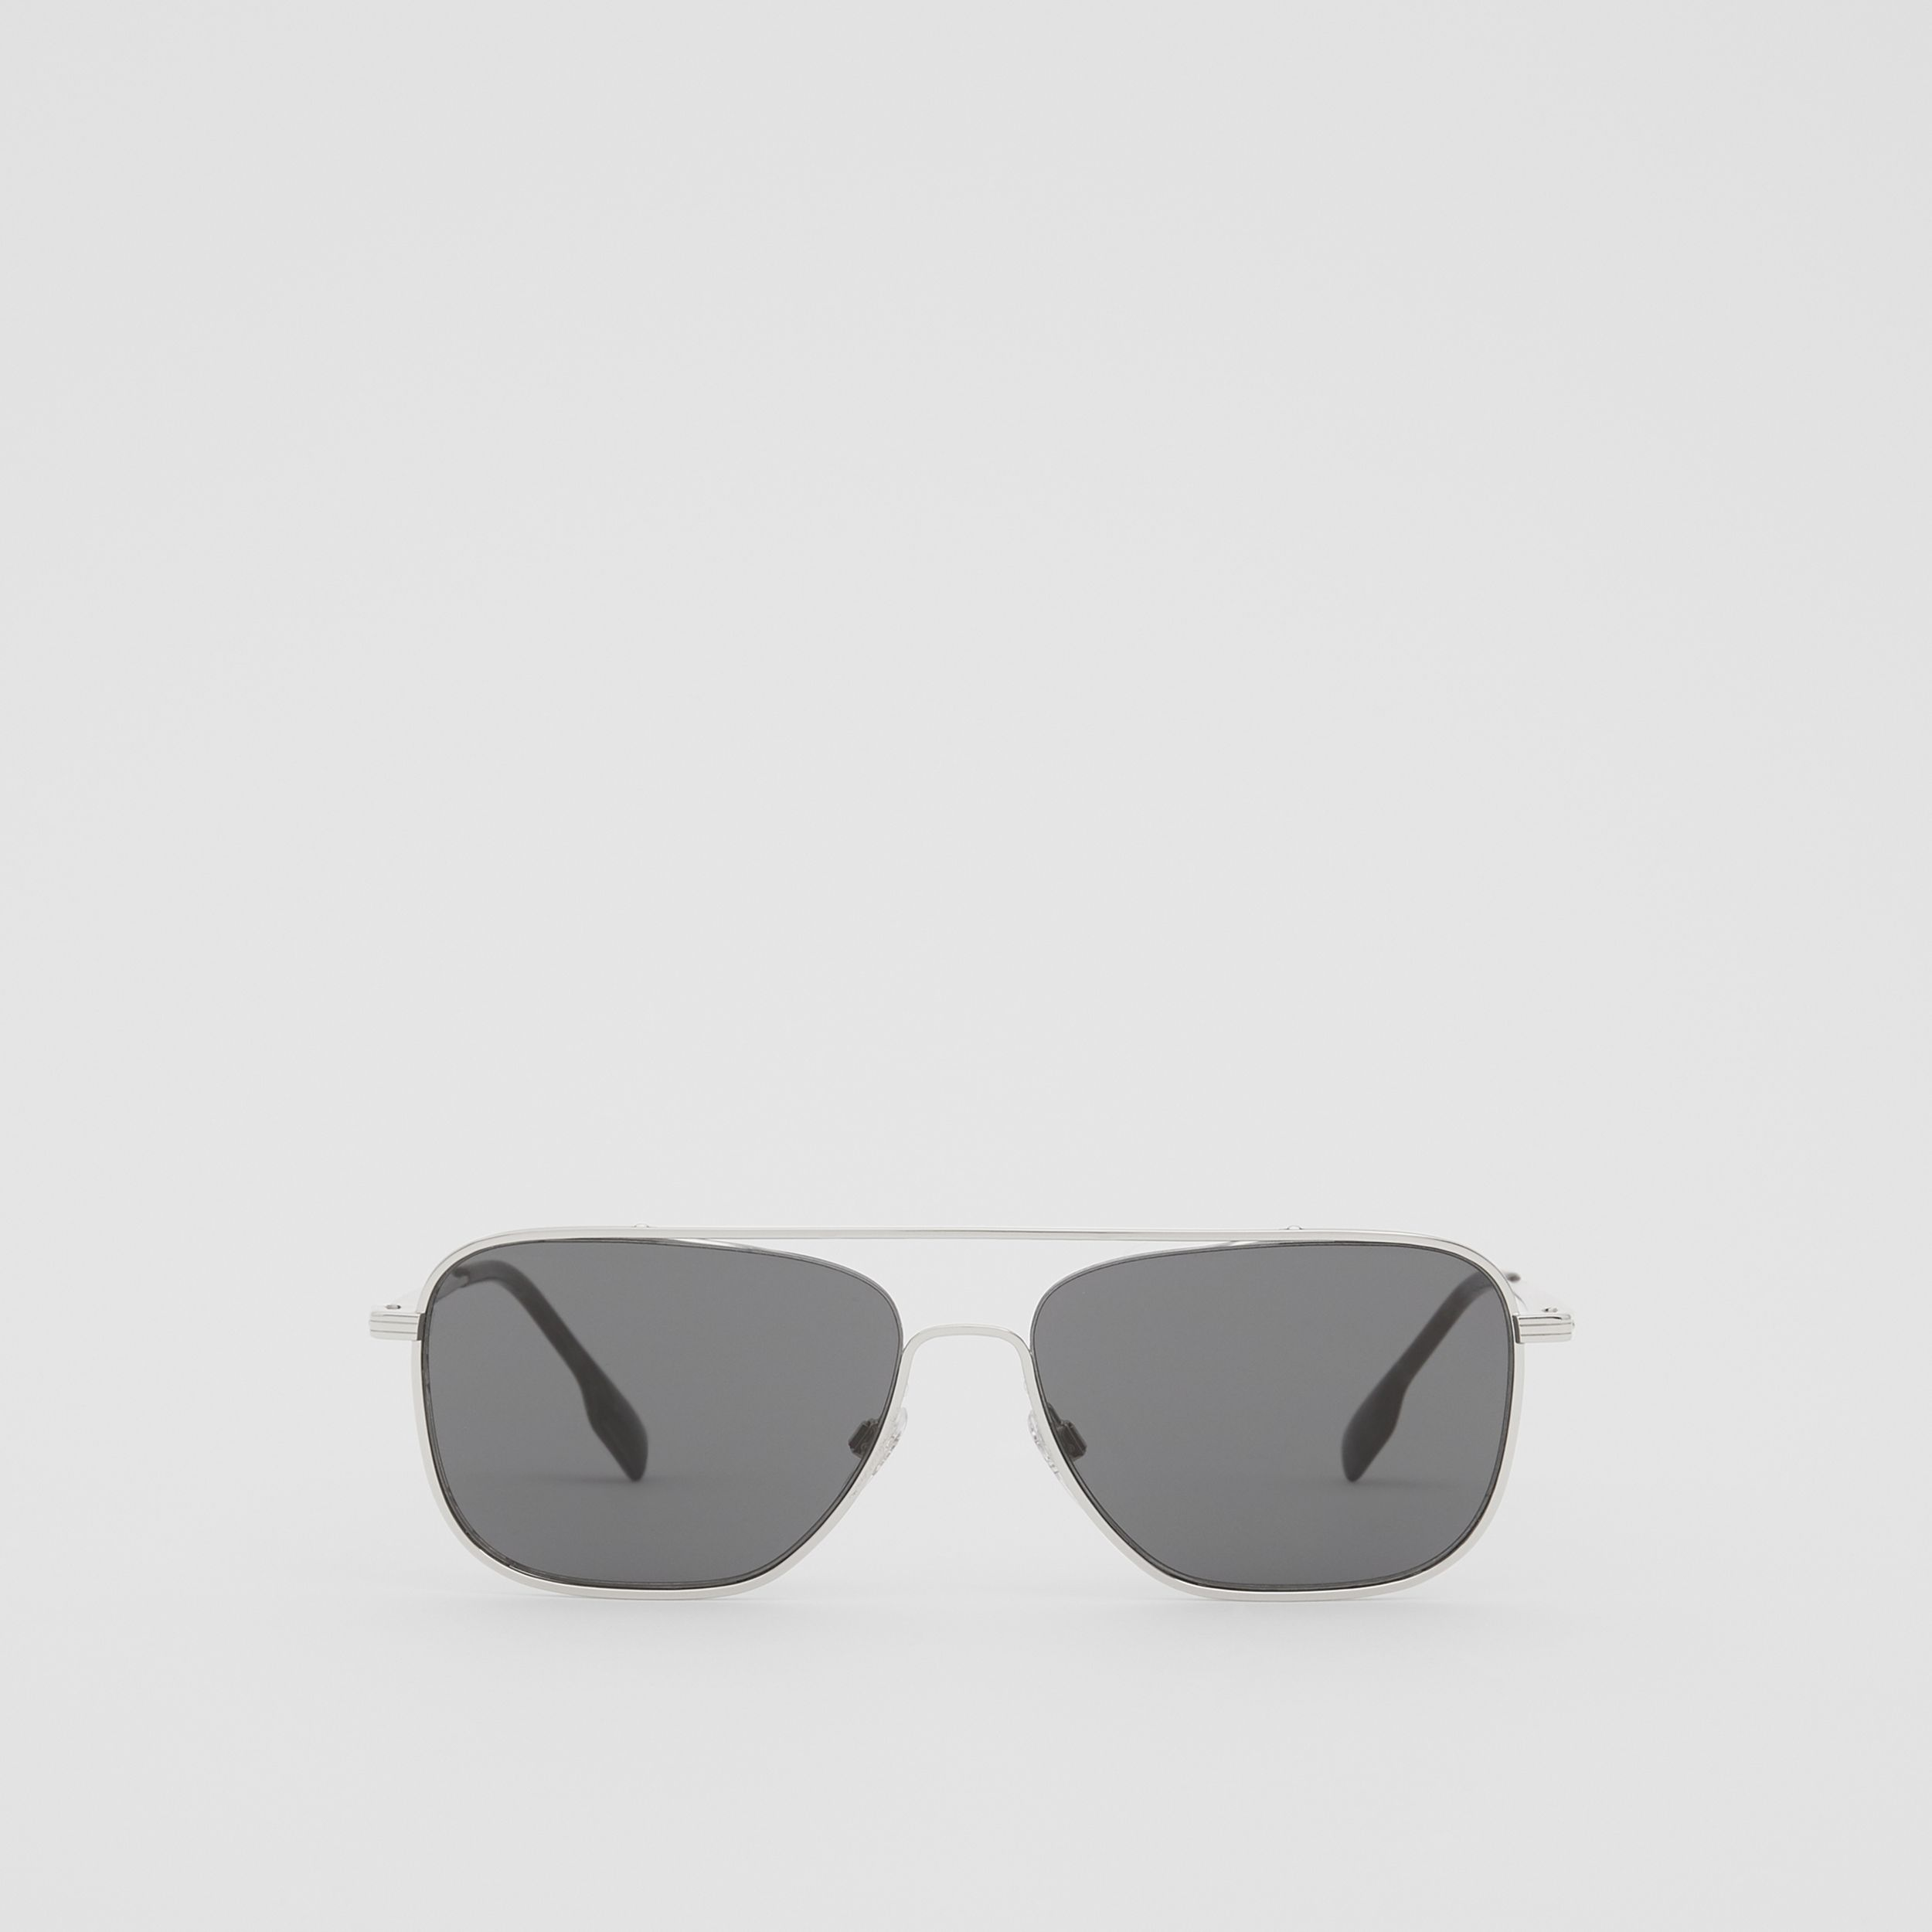 Top Bar Detail Square Frame Sunglasses in Gunmetal Grey - Men | Burberry - 1